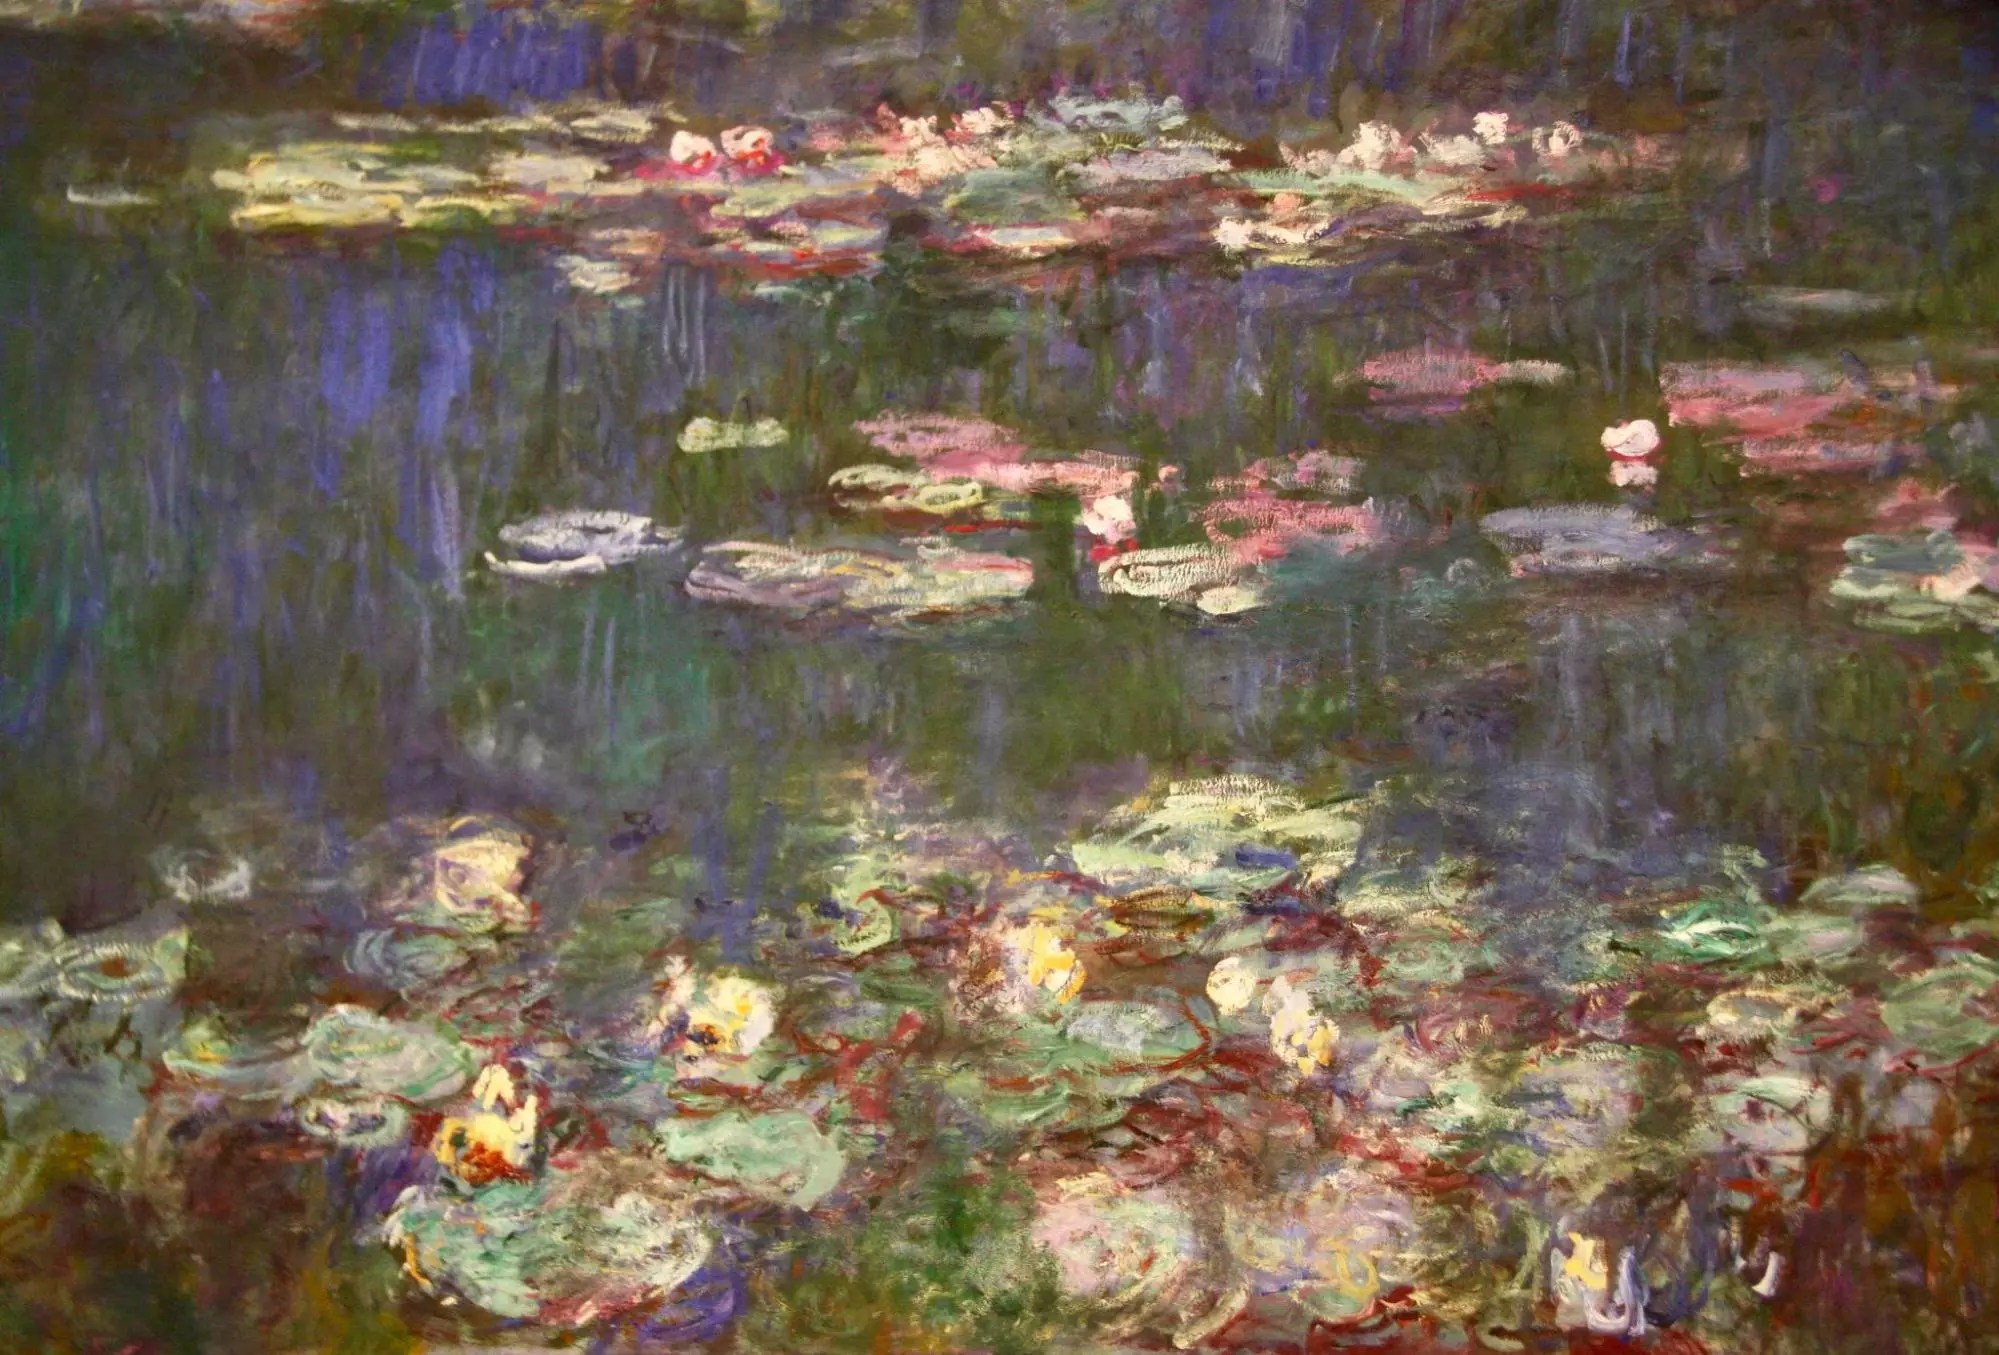 A closeup of one of Monet's water lily paintings in the Musee de l'Orangerie in Paris